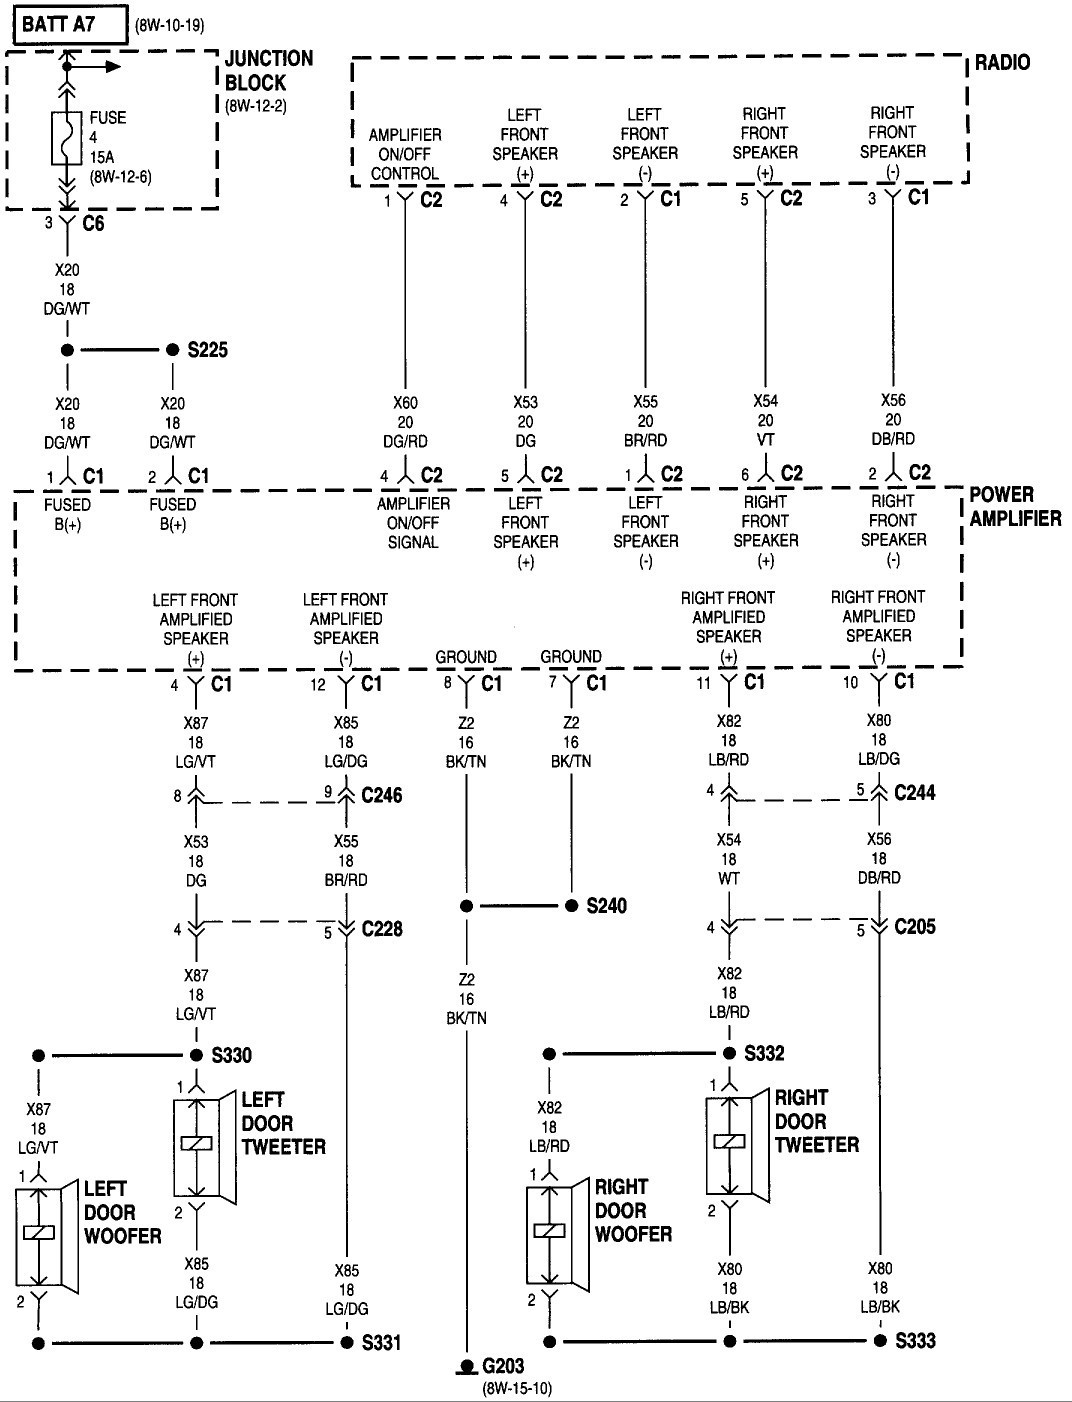 1986 Dodge Caravan Radio Wiring Diagram Wiring Diagram For Light 2003 Dodge  Grand Caravan Fuse Box Diagram 2005 Dodge Grand Caravan Stereo Wiring  Schematic